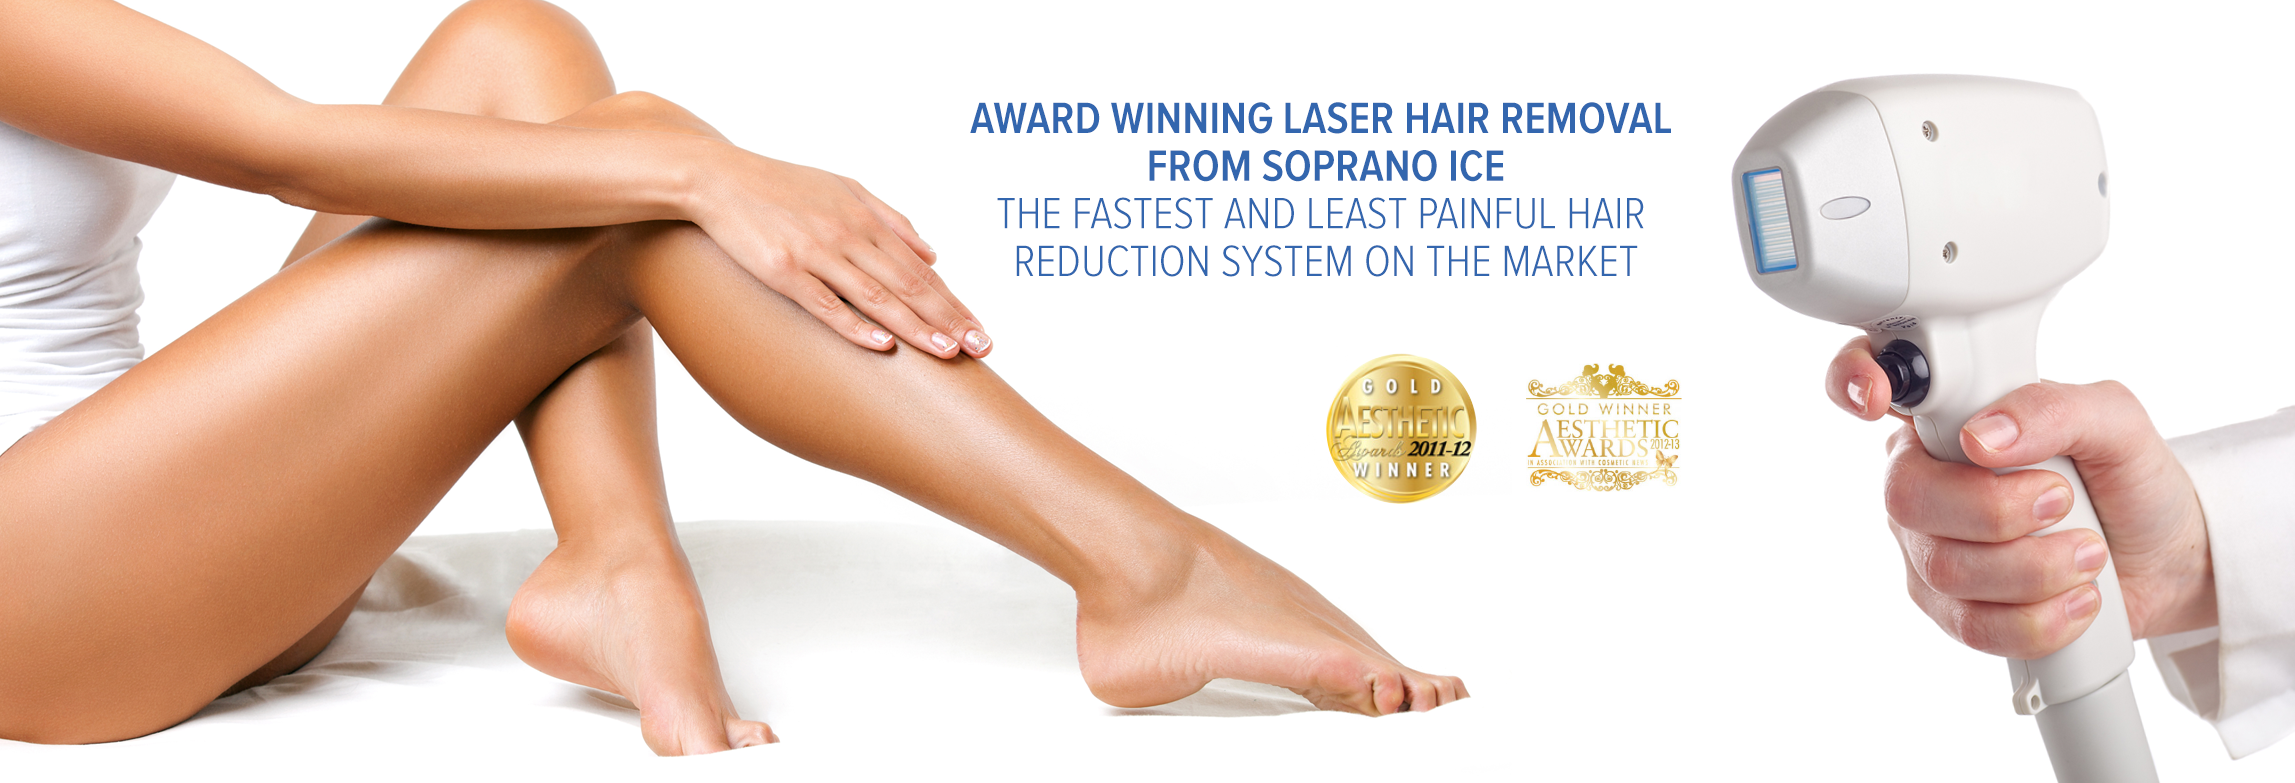 soprano ice laser hair removal - soprano ice edinburgh, Human Body